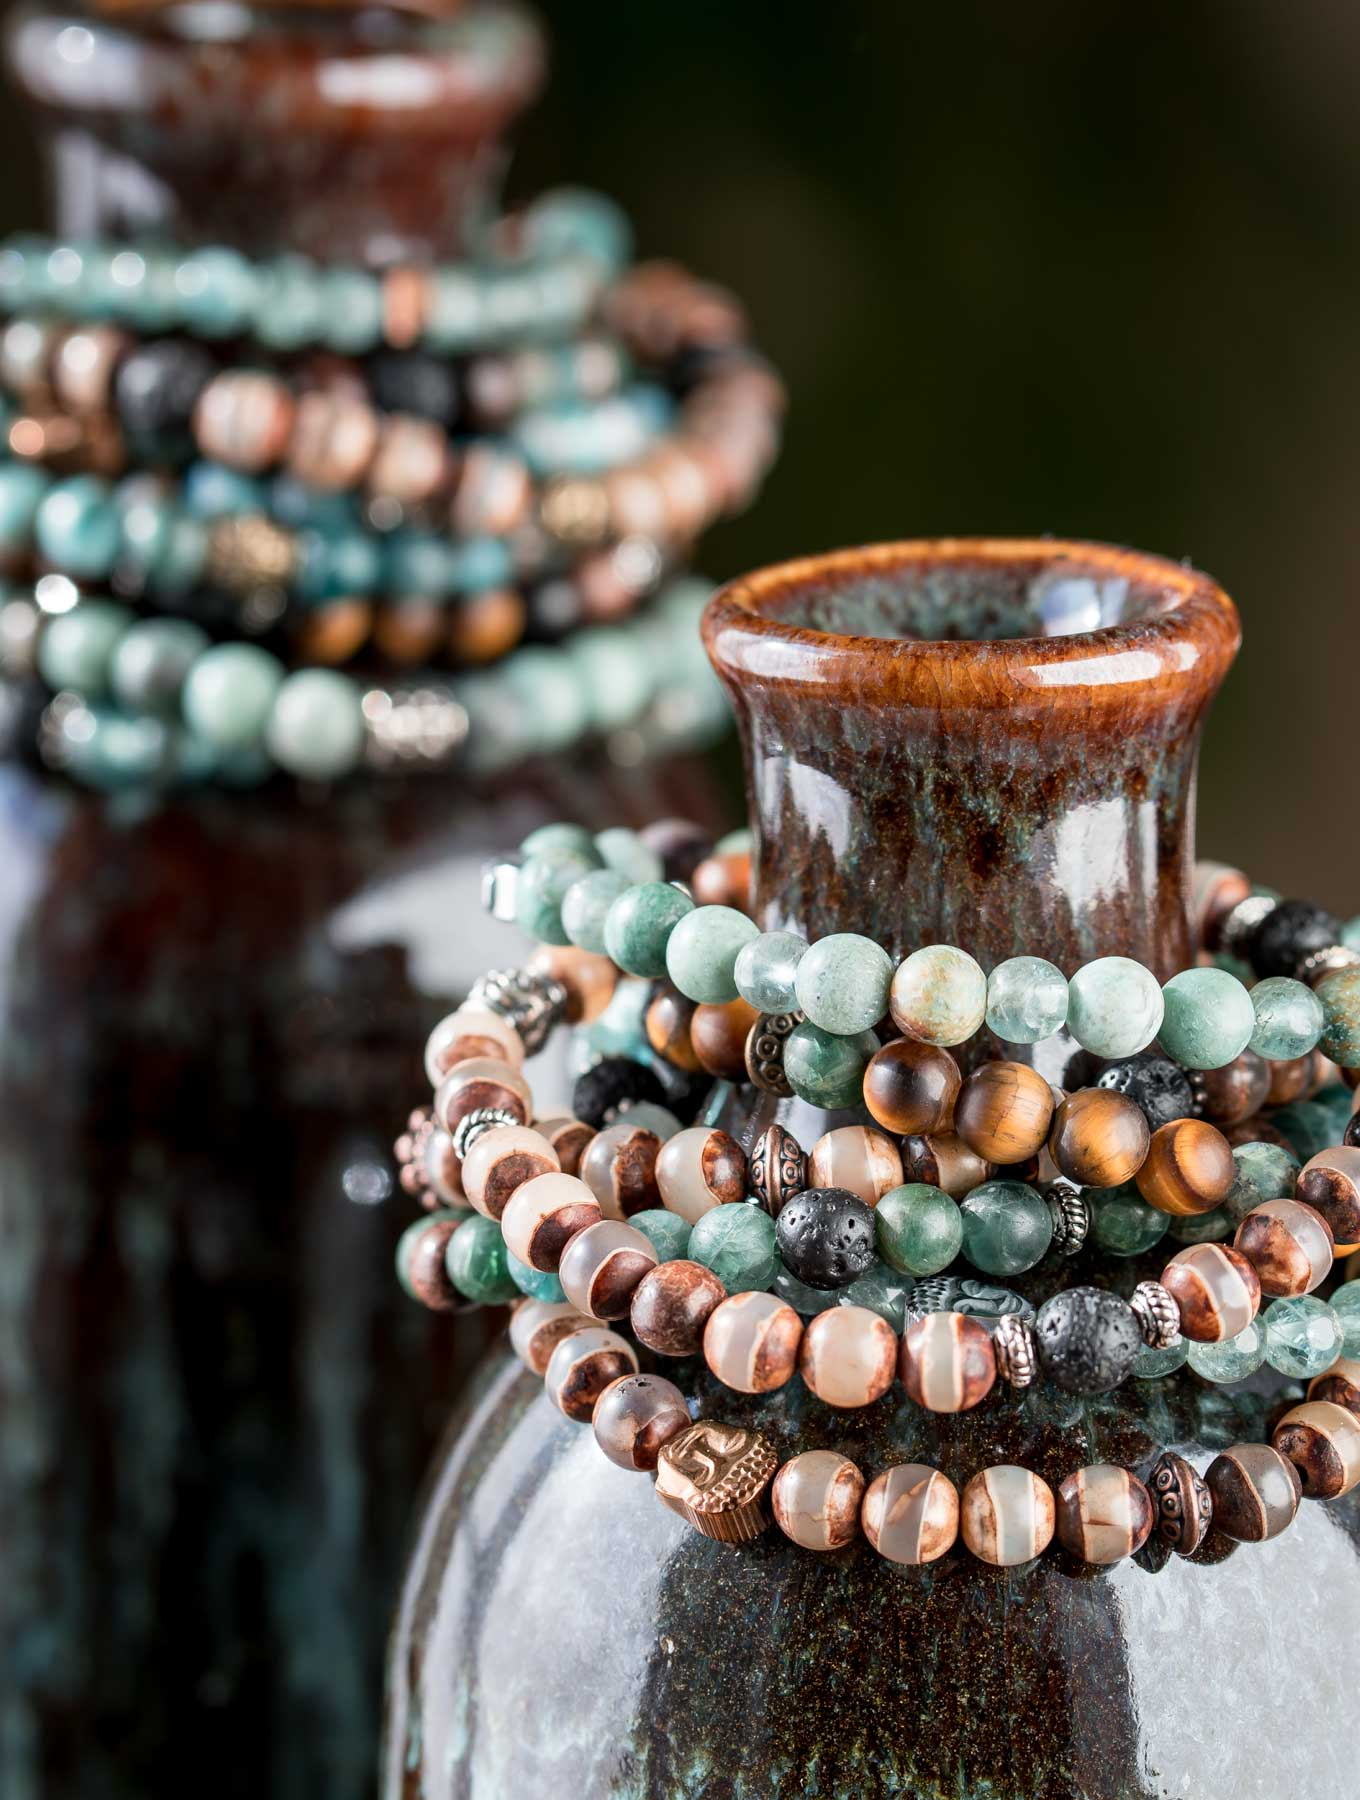 Essential oil diffuser bracelets on a bottle